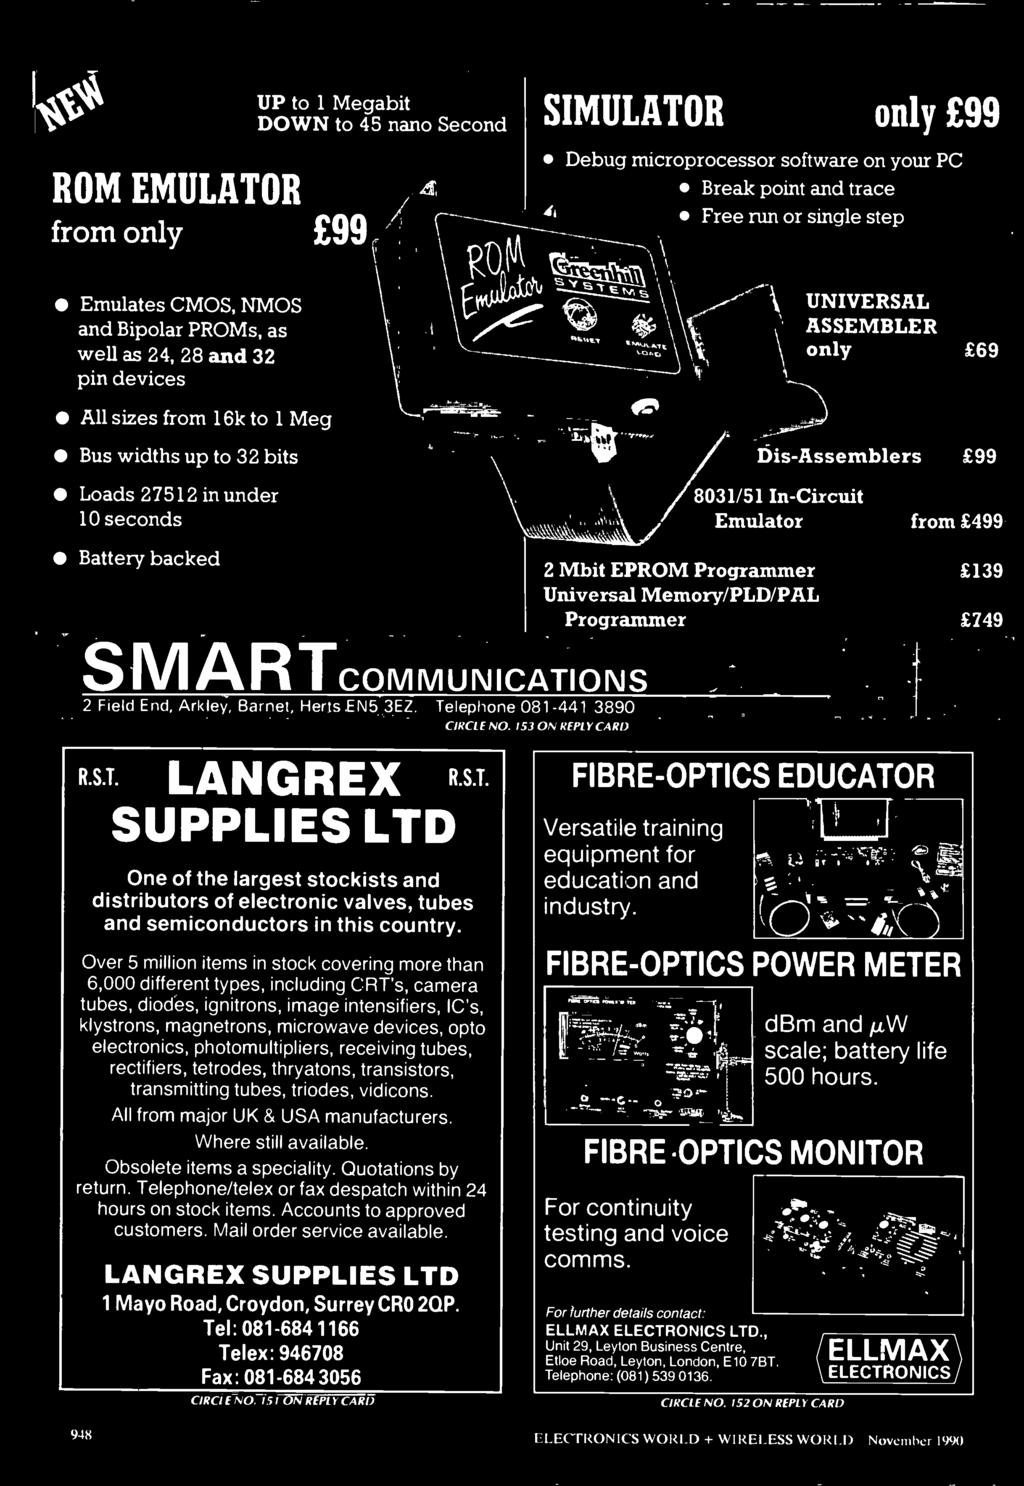 Wireless World All In The Card Just A Toy 340 Spectrums Analyser 441 Singlechip Microcomputer Integrated Circuit Diagram Schematic S Martcommunications 2 Field End Arkley Barnet Herts En5